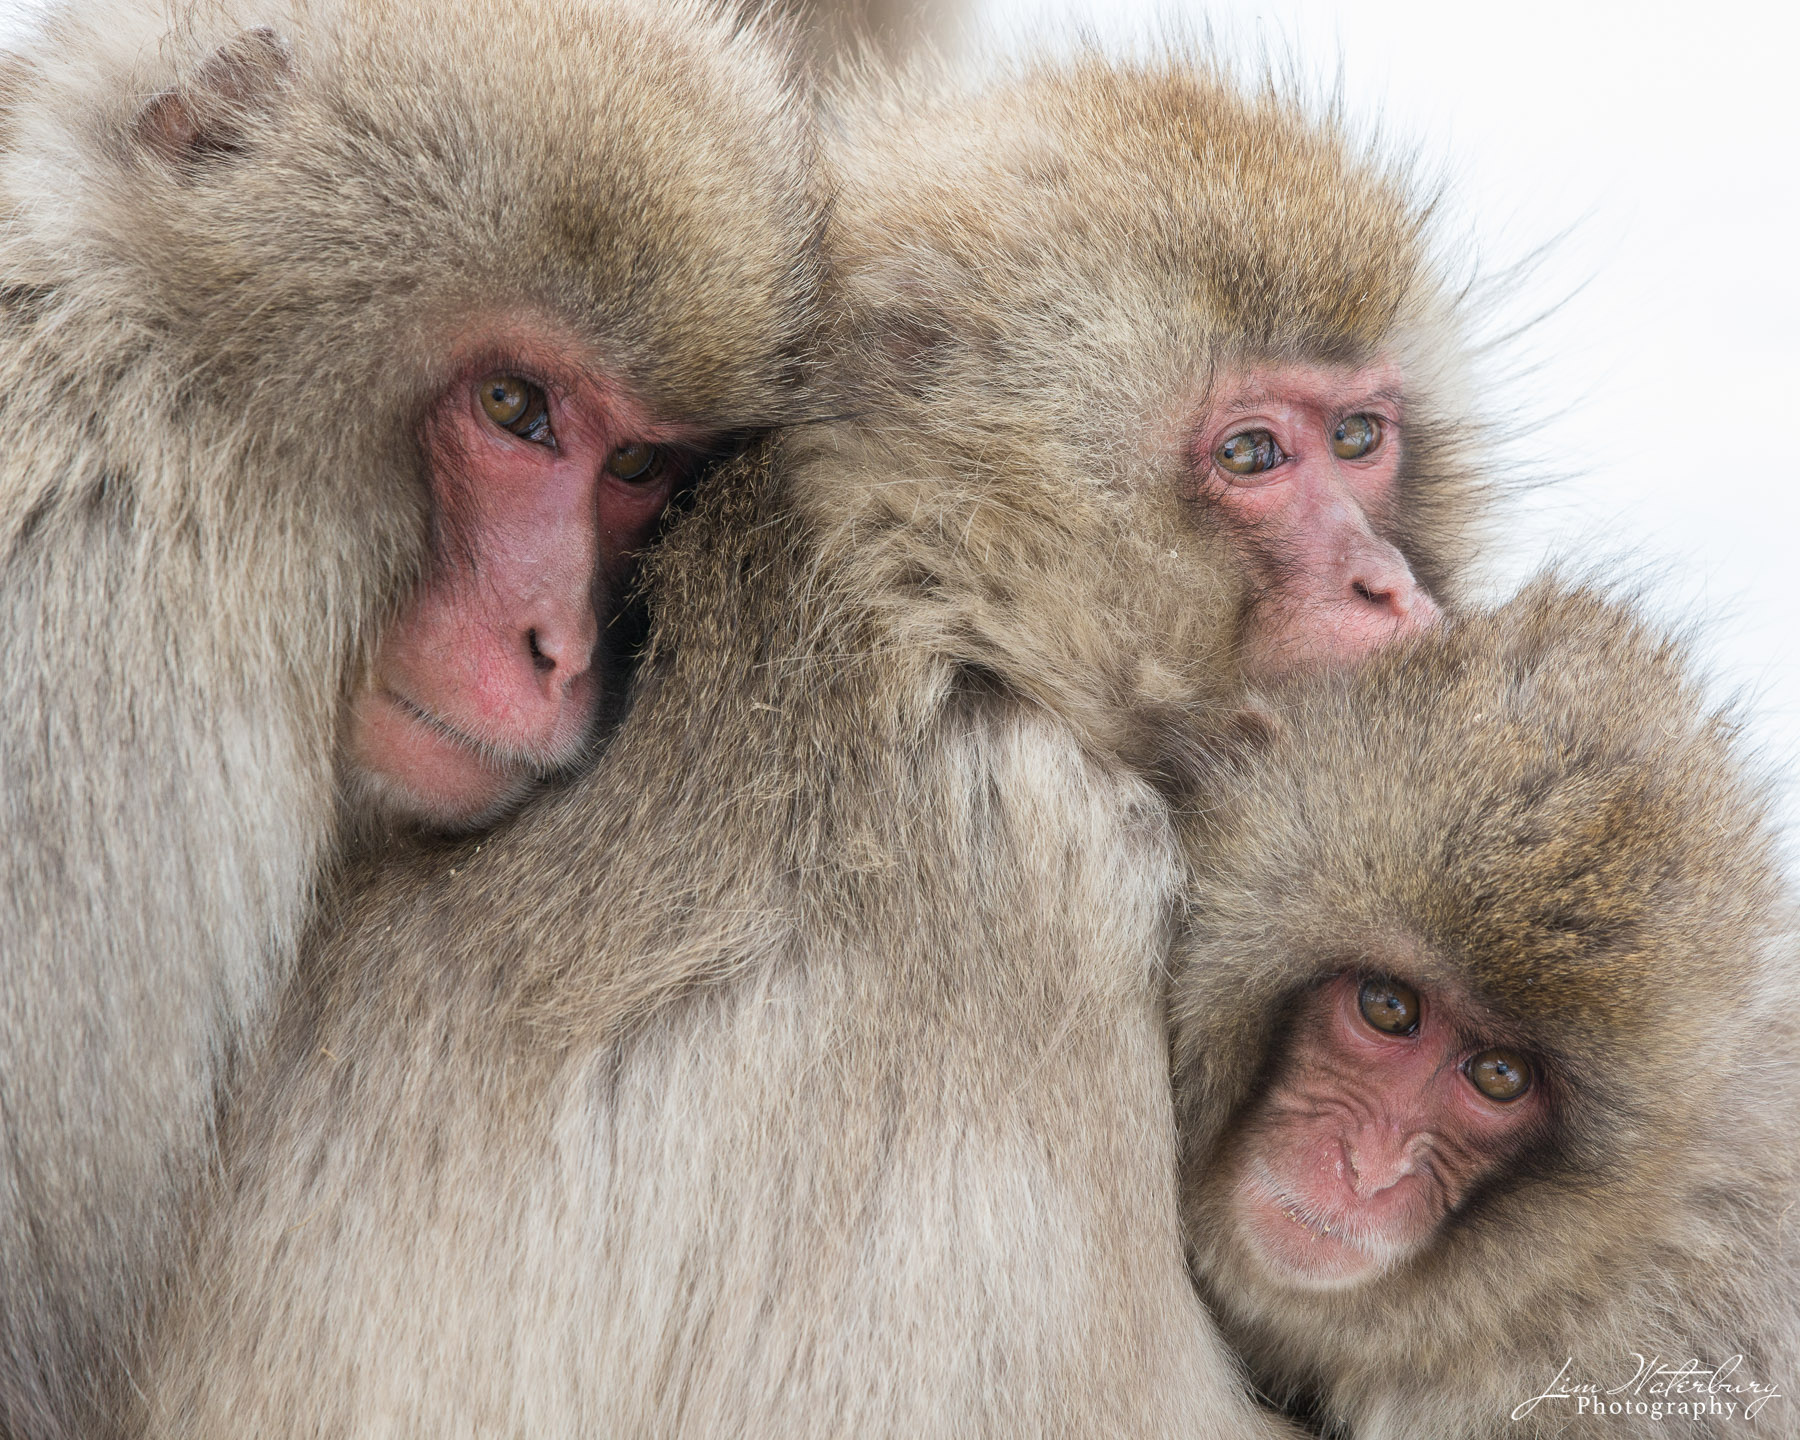 Asia, Japan, Nagano, snow monkey, macaque, family, photo